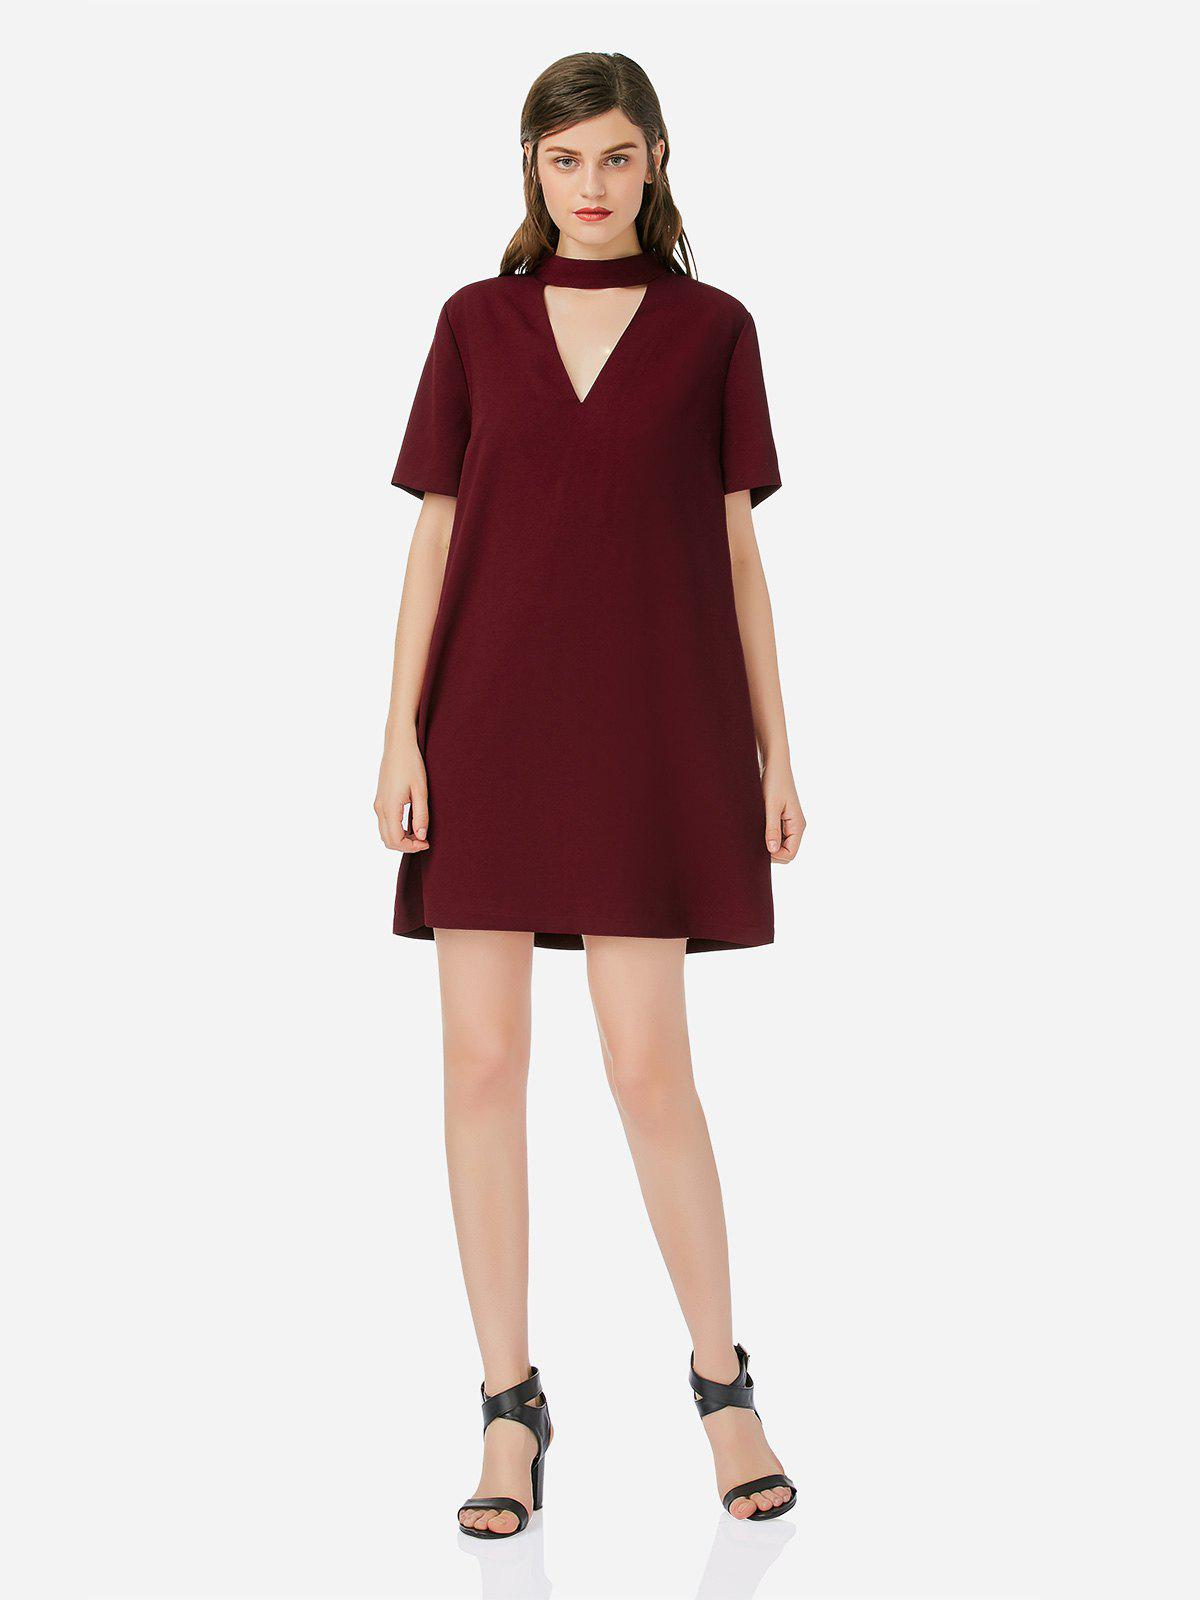 Choker Neck Shirt Dress